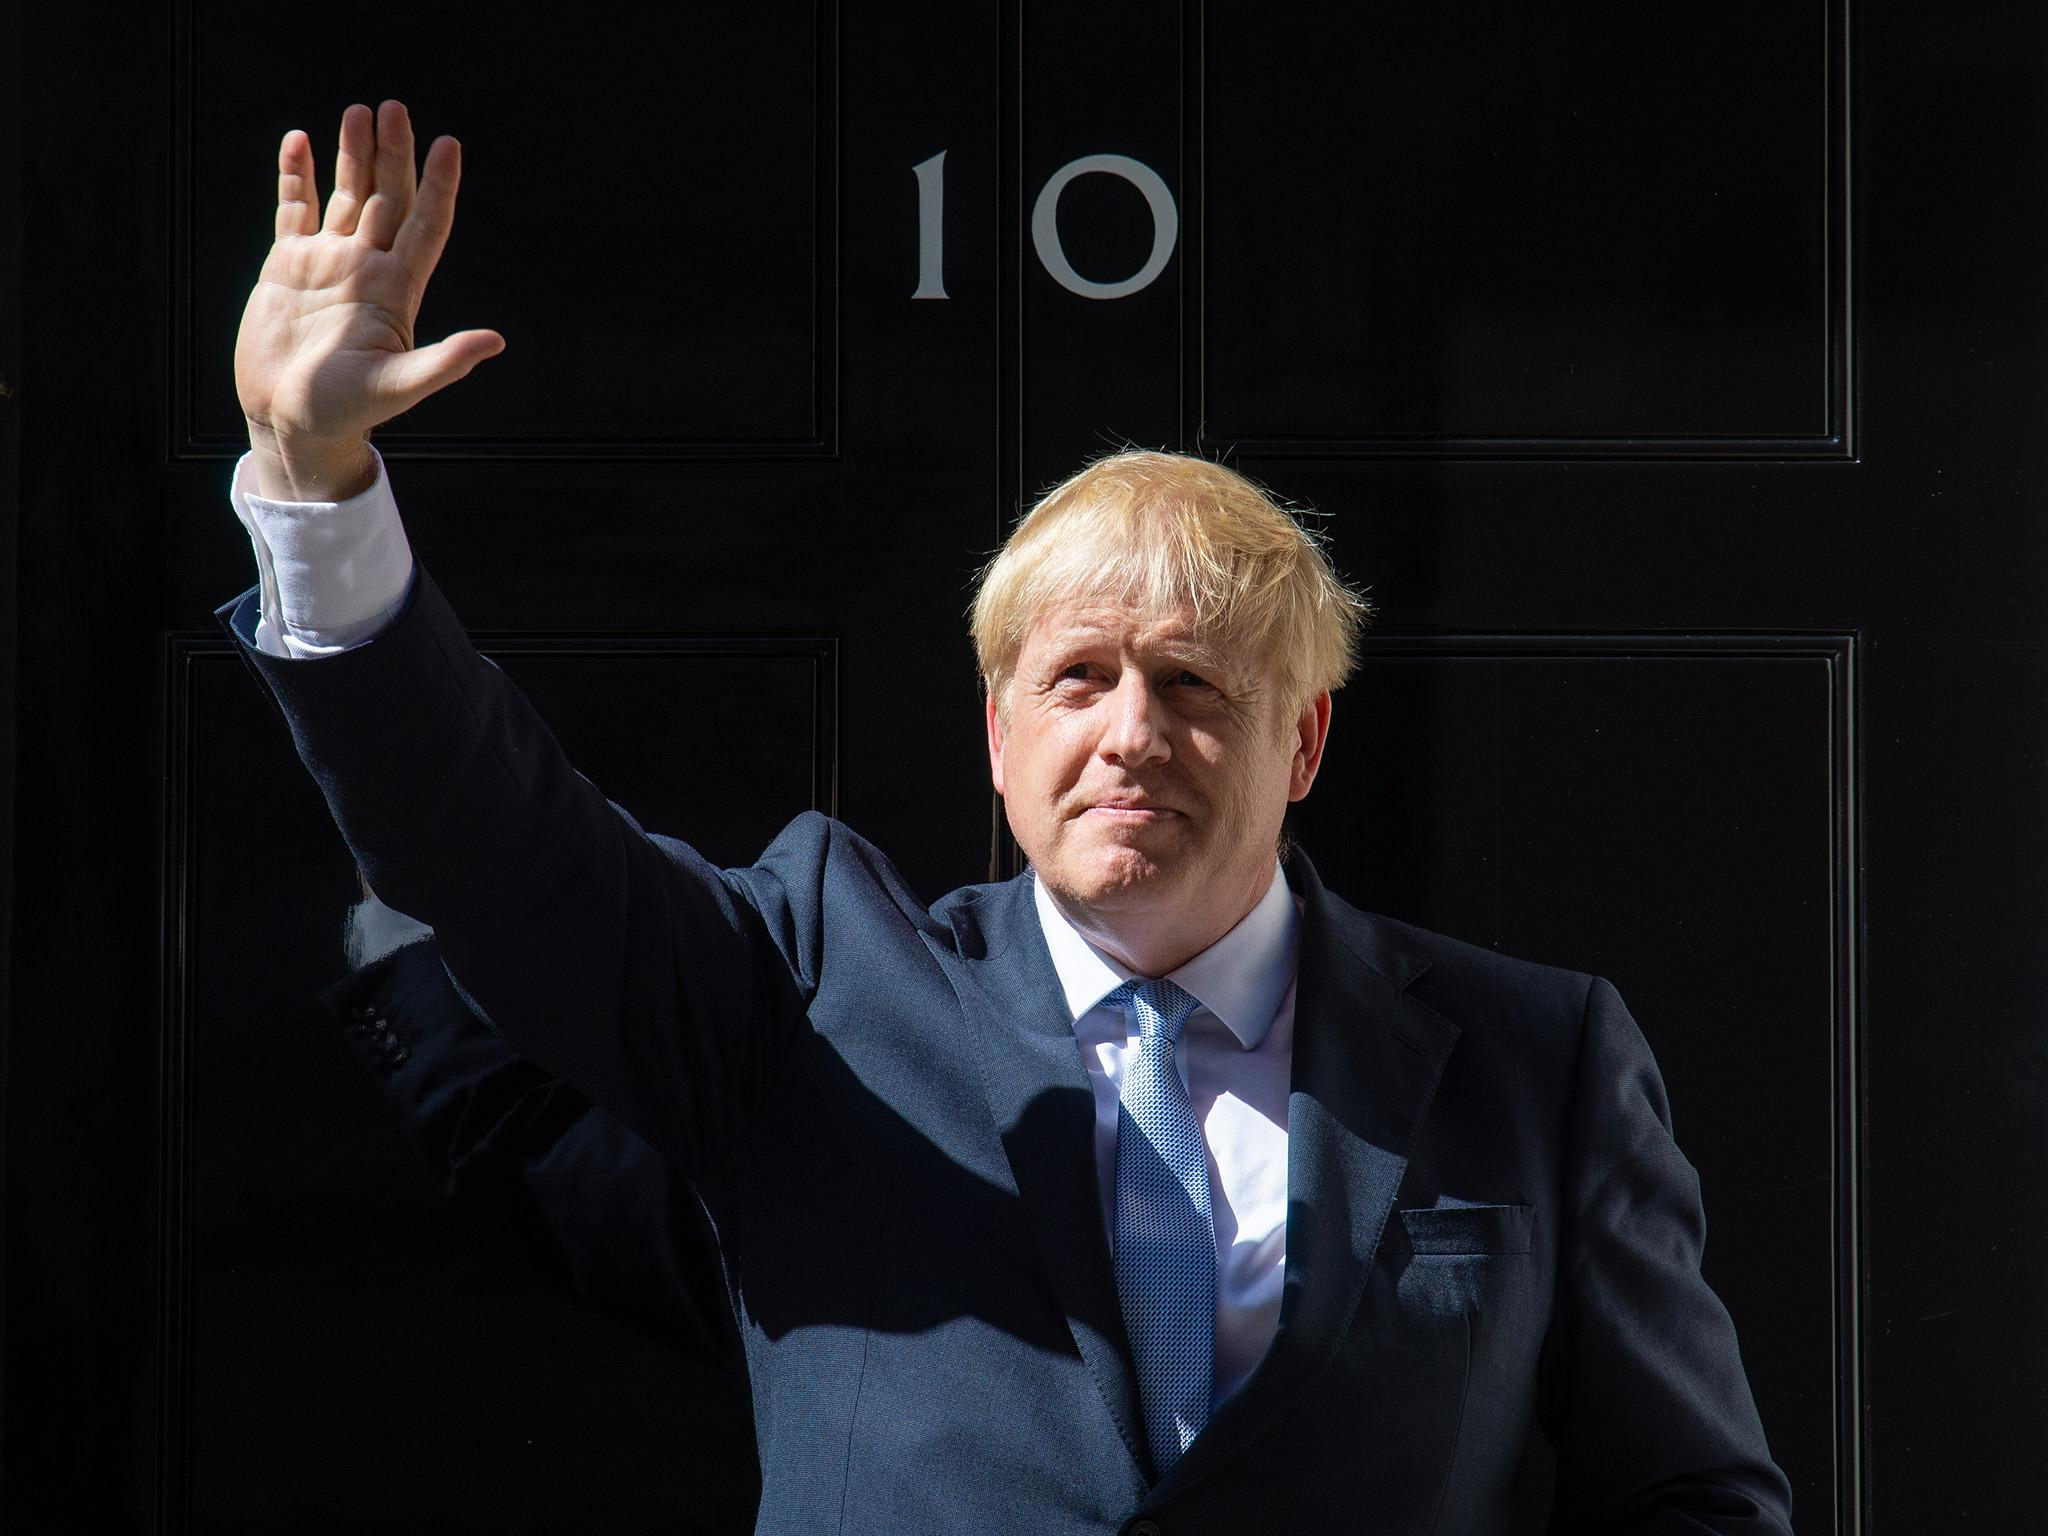 Boris Johnson news - LIVE: PM refuses to rule out holding election after Halloween in order to force through no-deal Brexit